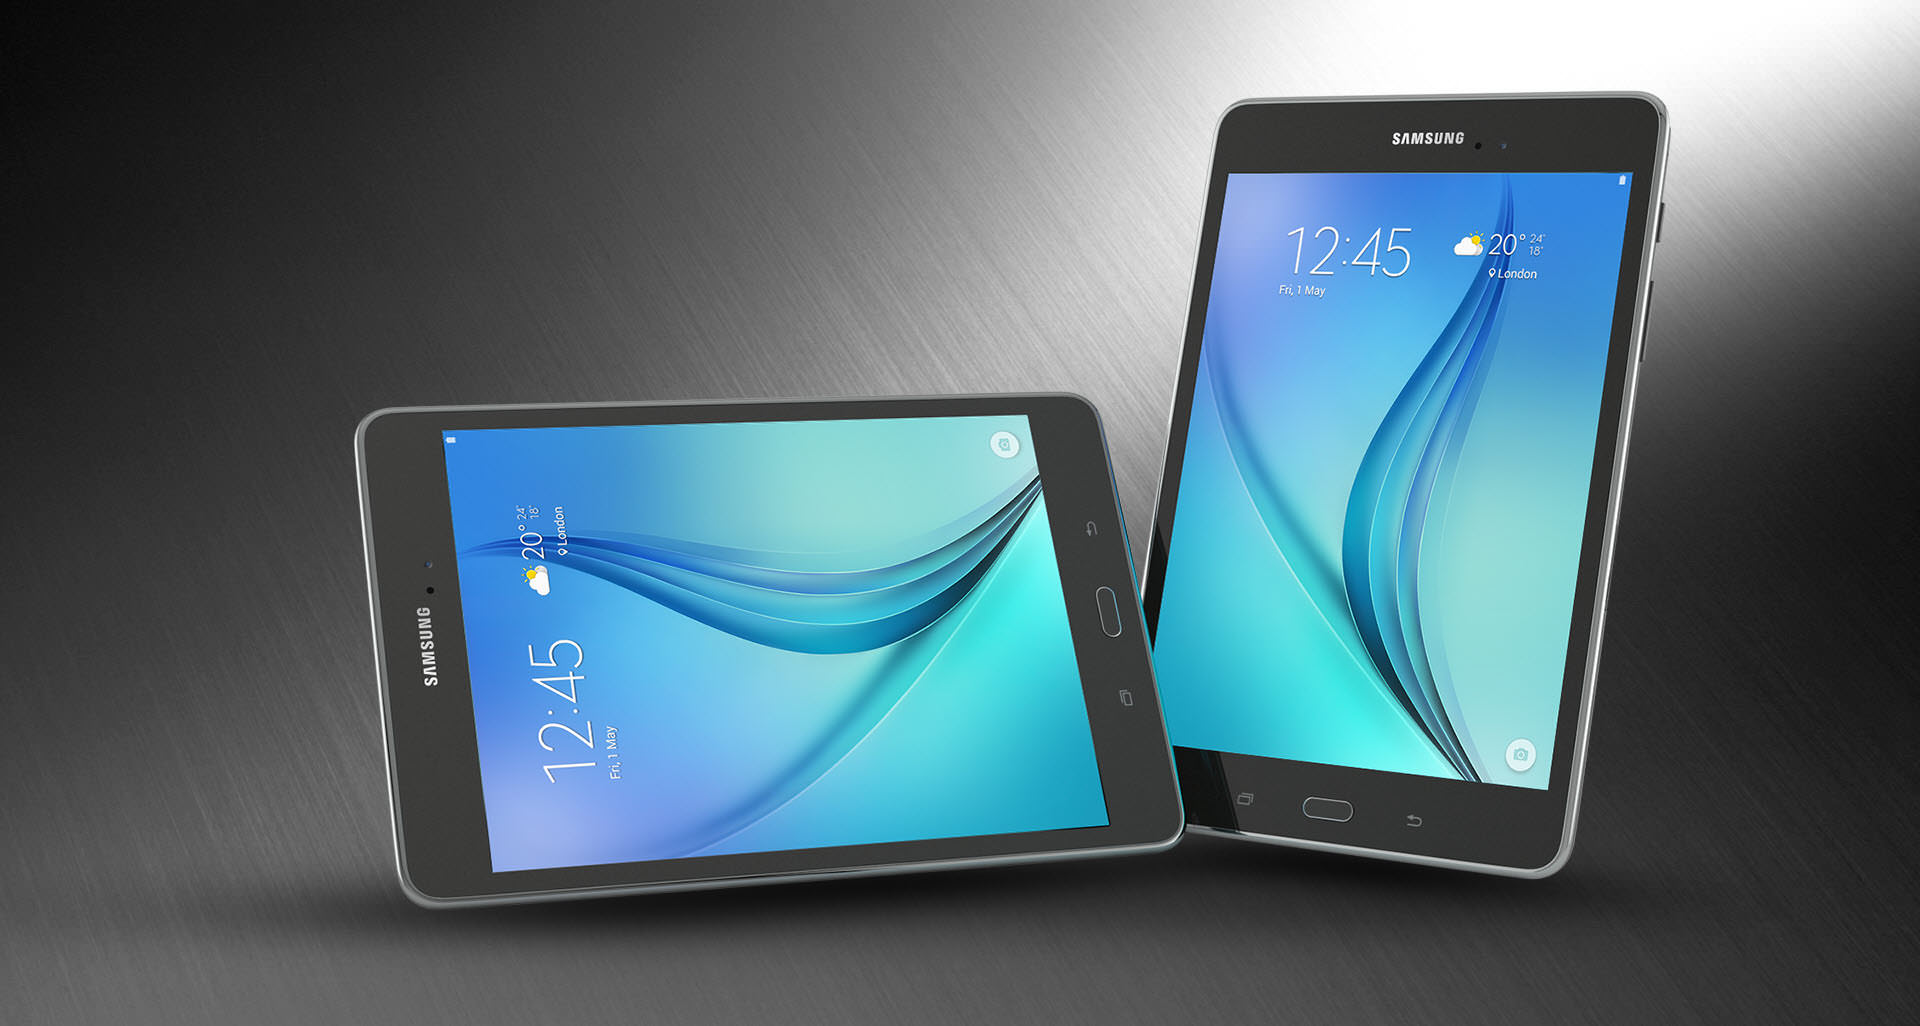 Samsung Galaxy Tab A 8.0 specifications